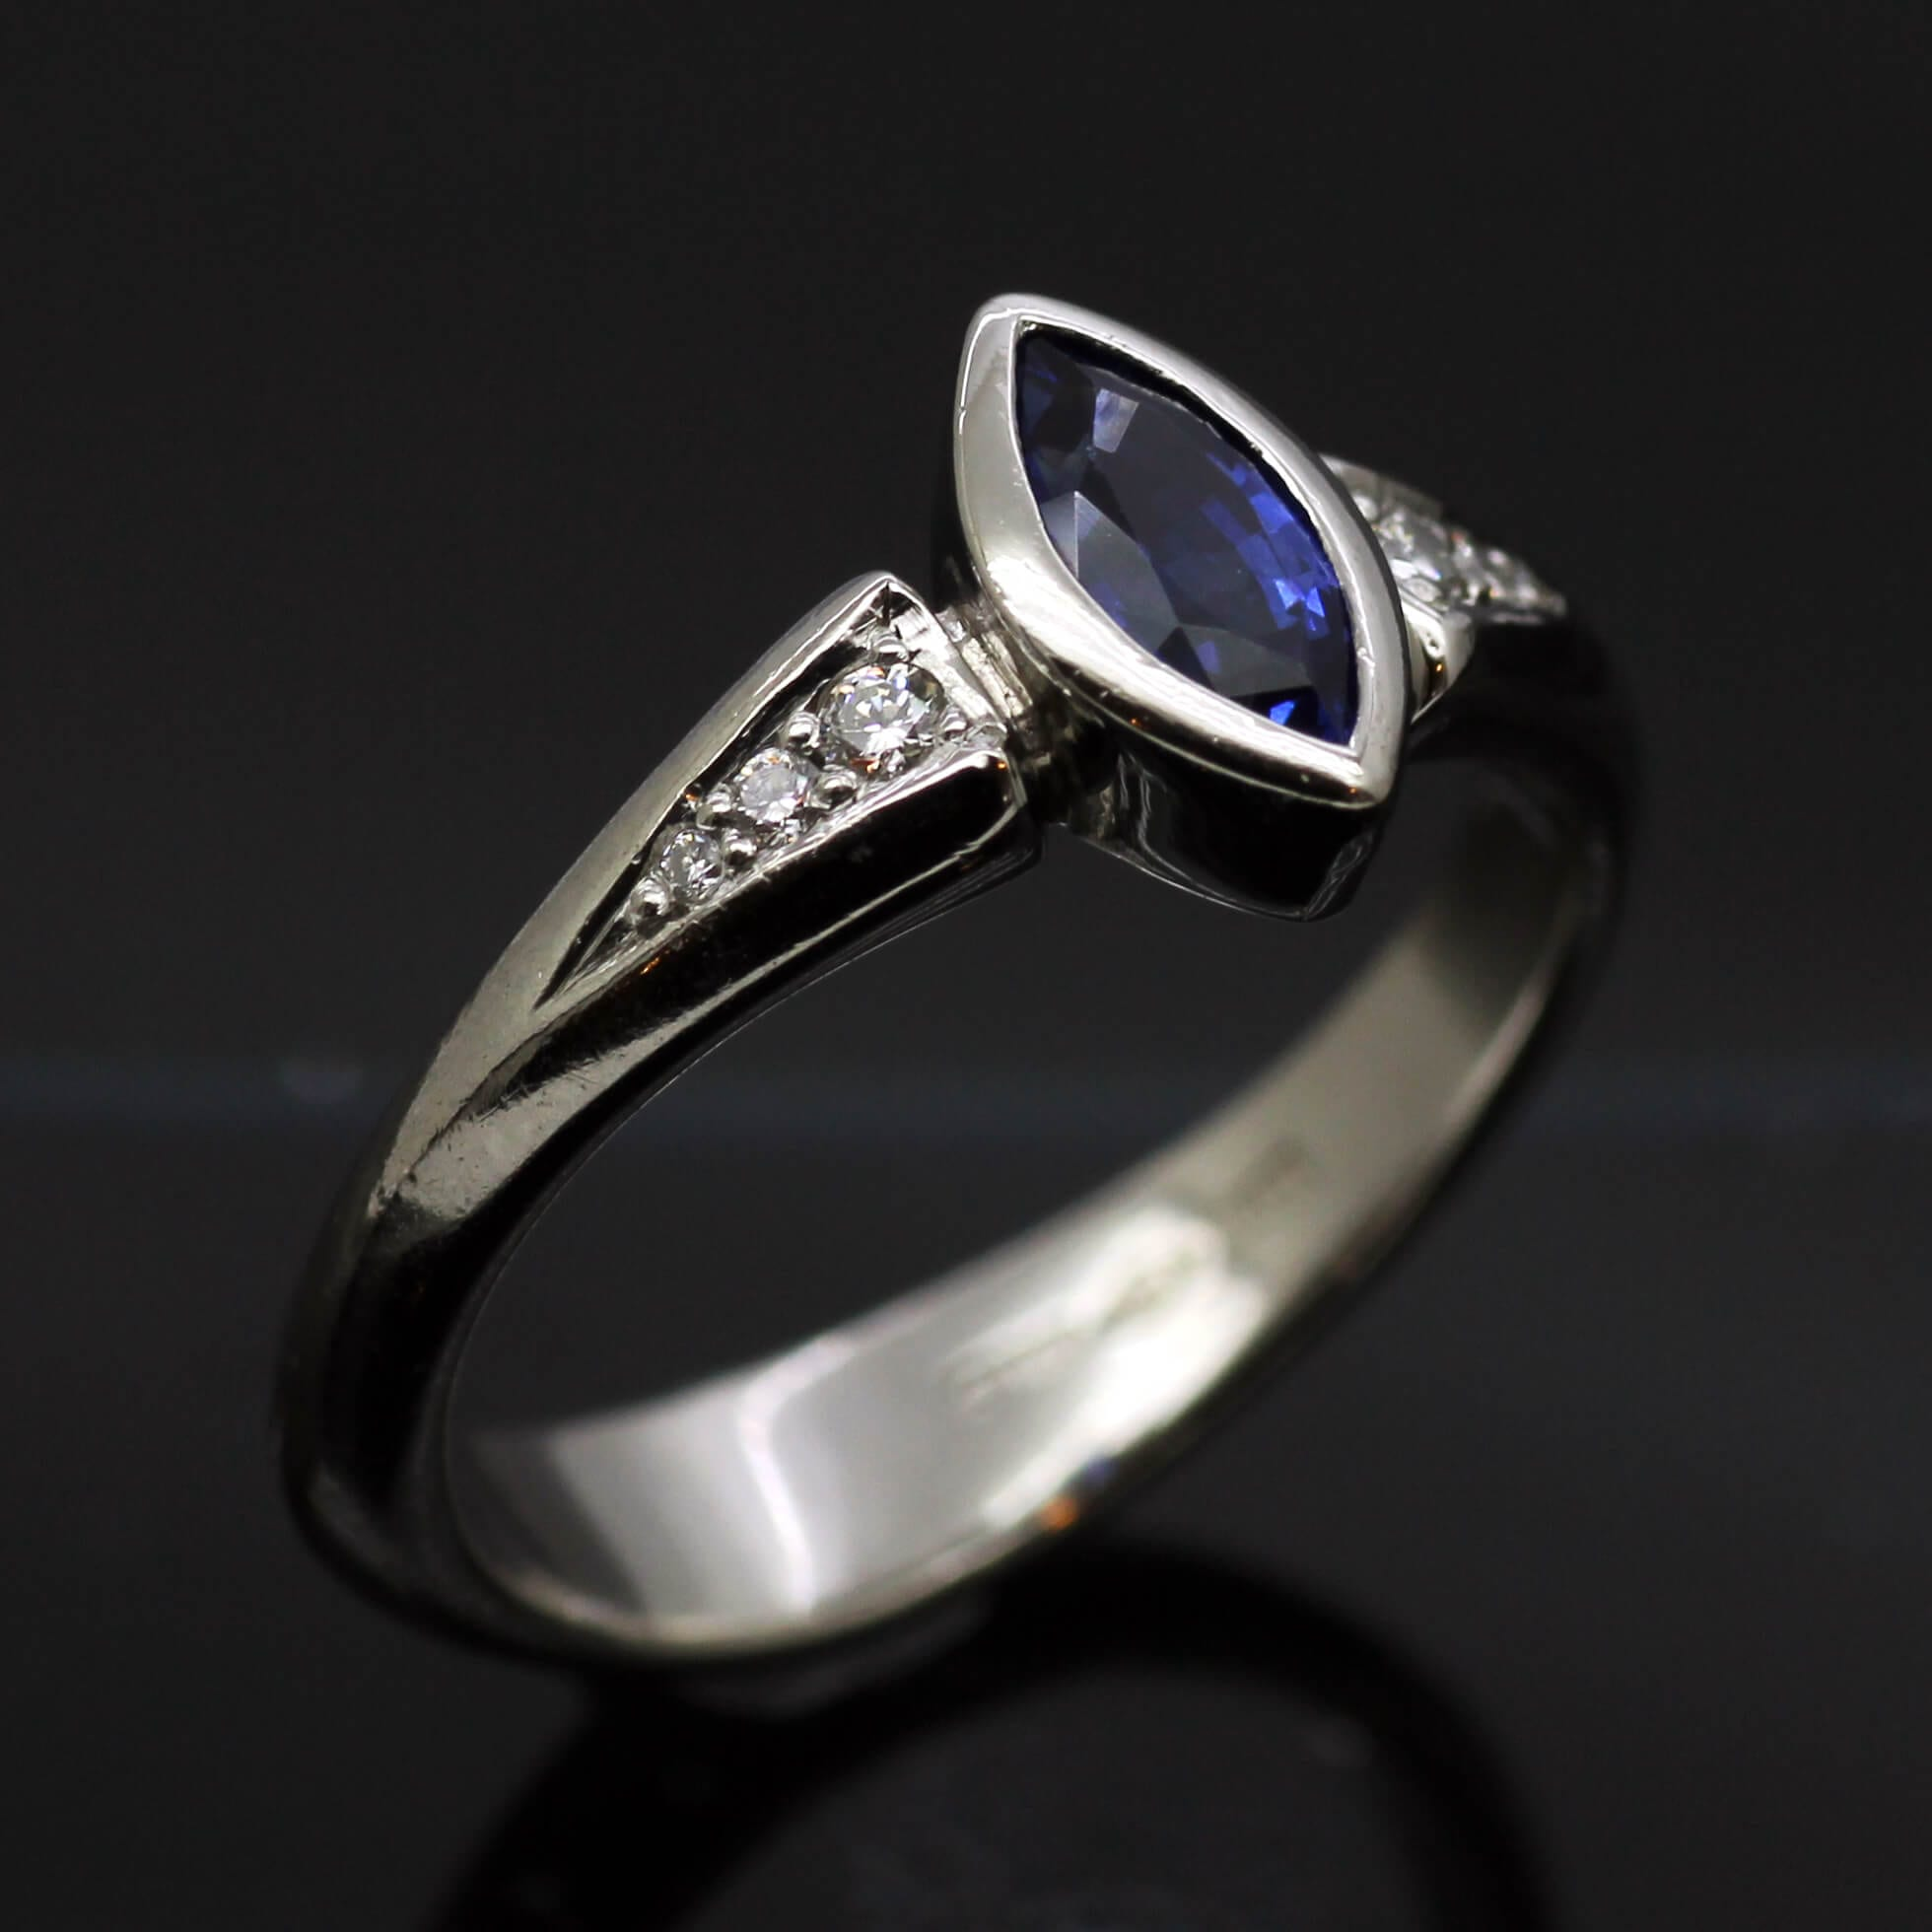 Bespoke Marquis cut Sapphire and Diamond handcrafted engagement ring